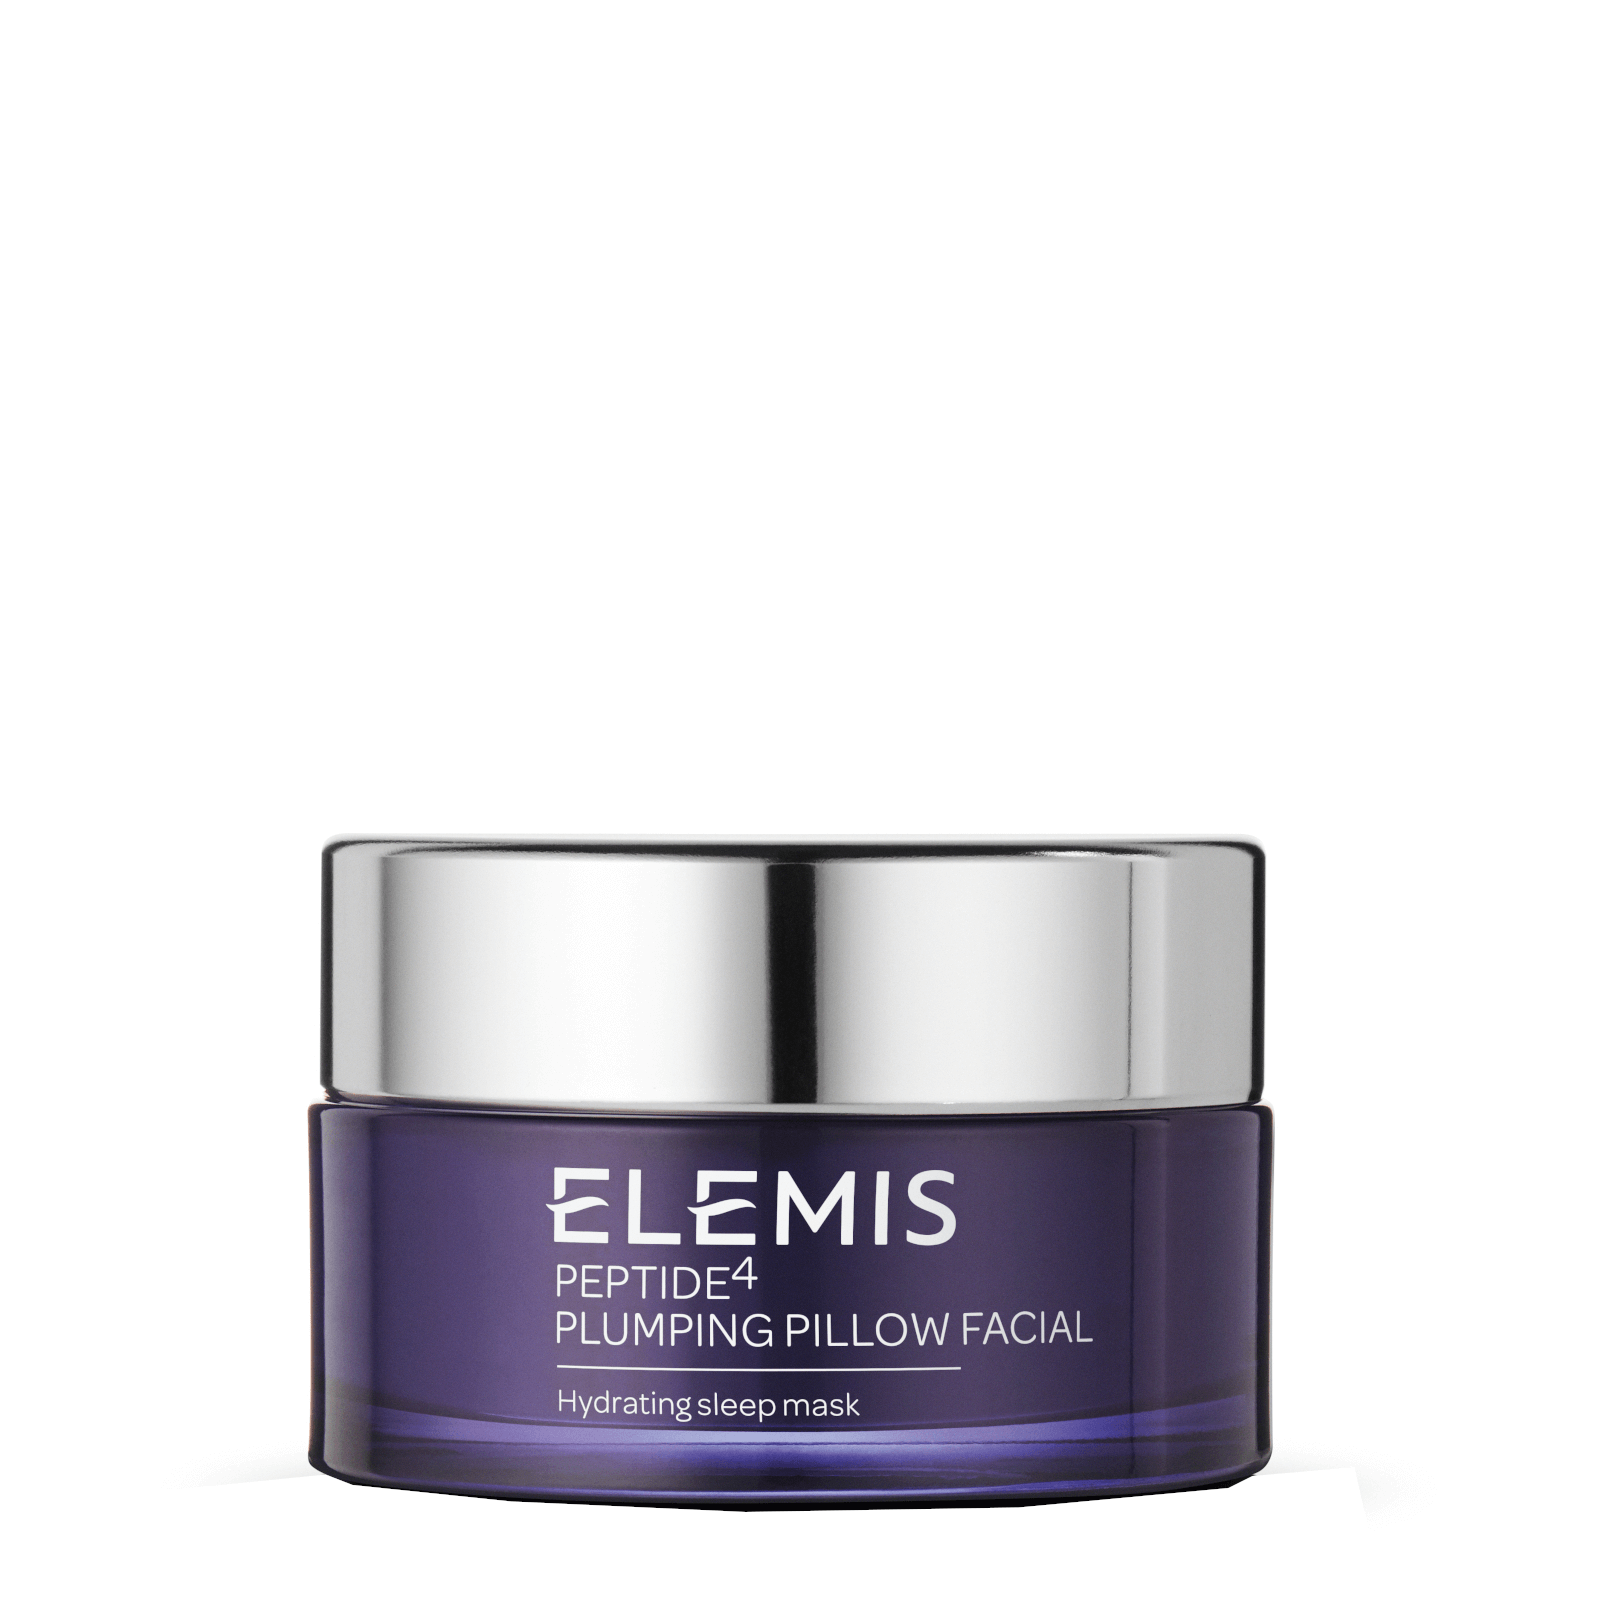 Elemis Peptide4 Plumping Pillow Facial, Skin Care, London Loves Beauty